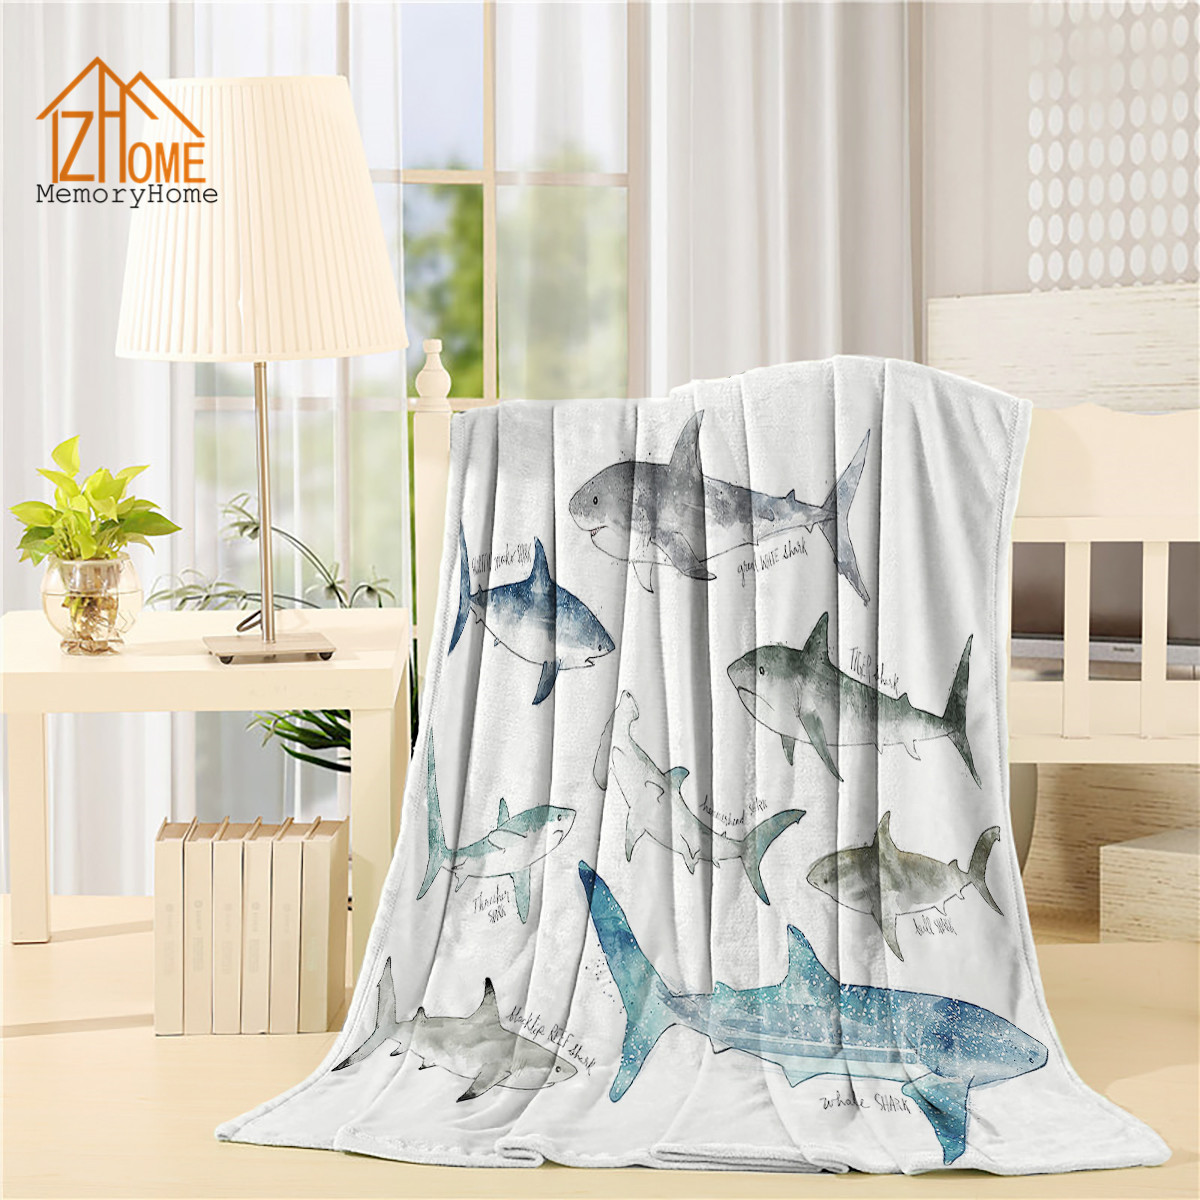 Memory Home Custom Fleece Blanket Throw Collection Types of Sharks Sea Animal Pattern Baby Adults Super Warm Bed Black Blanket